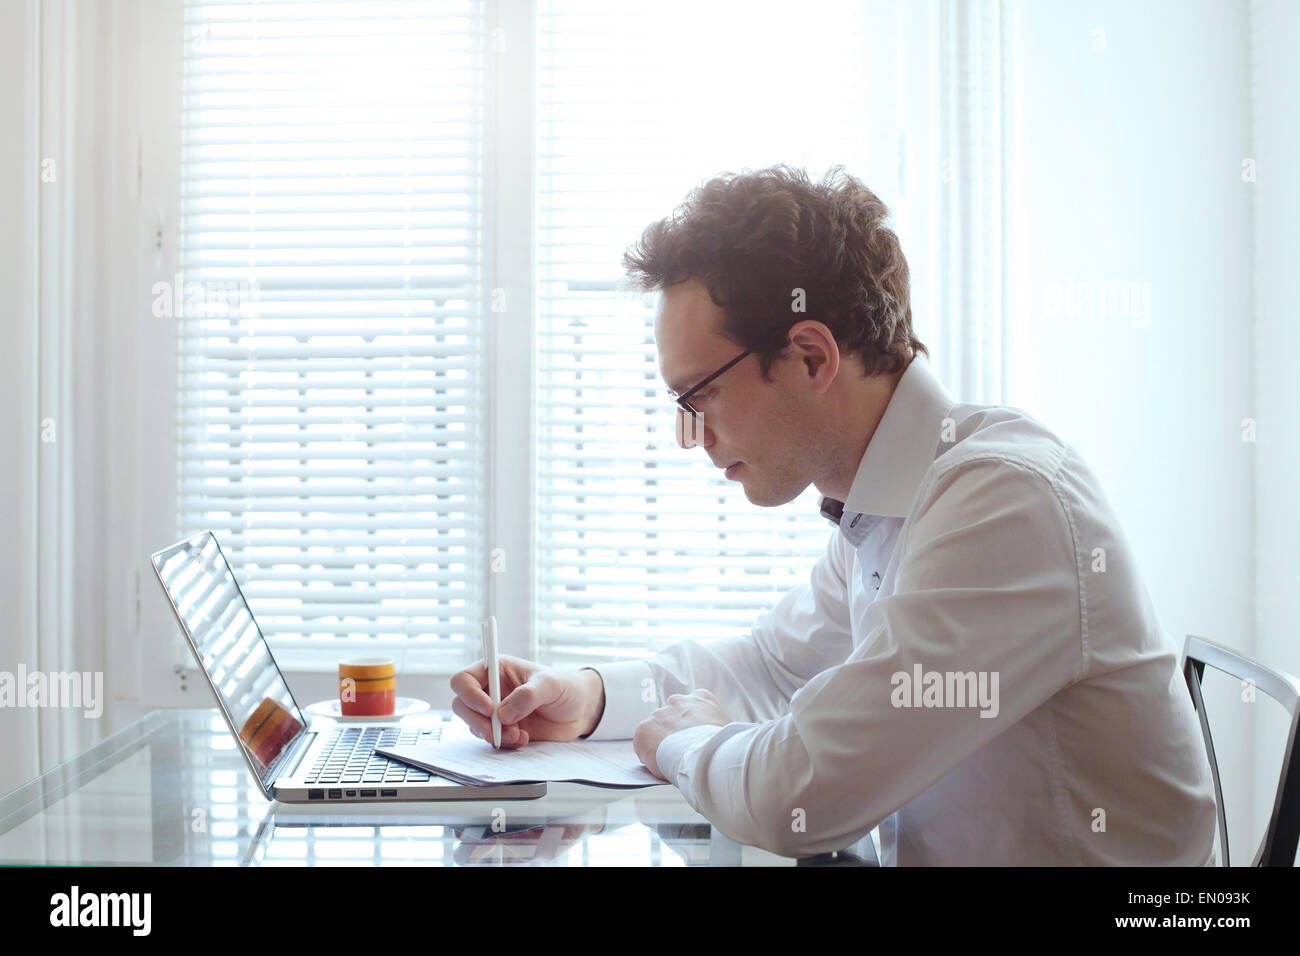 young business man working with documents and laptop in bright office interior - Stock Image